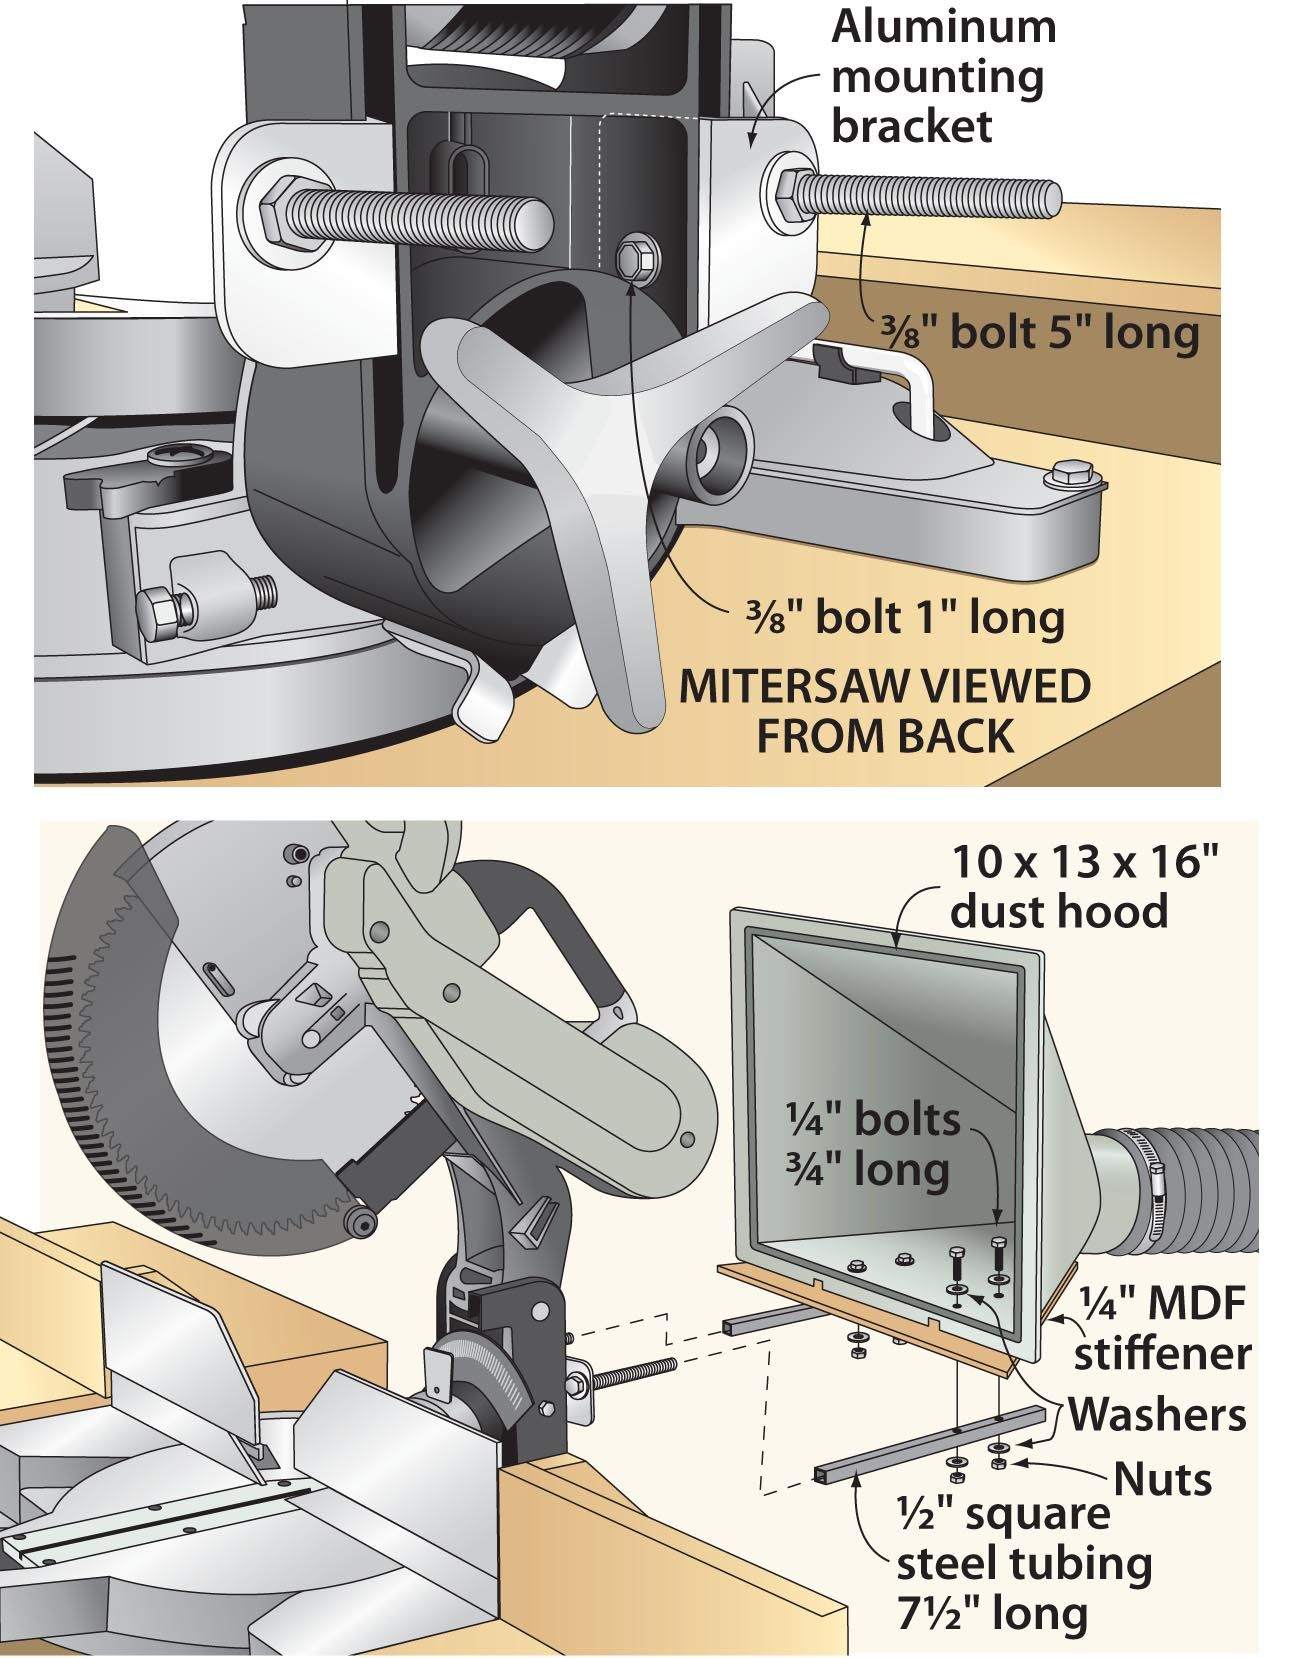 Dust Hood Has Big Appetite And A Mouth To Match Shop Dust Collection Dust Collection Mitre Saw Dust Collection